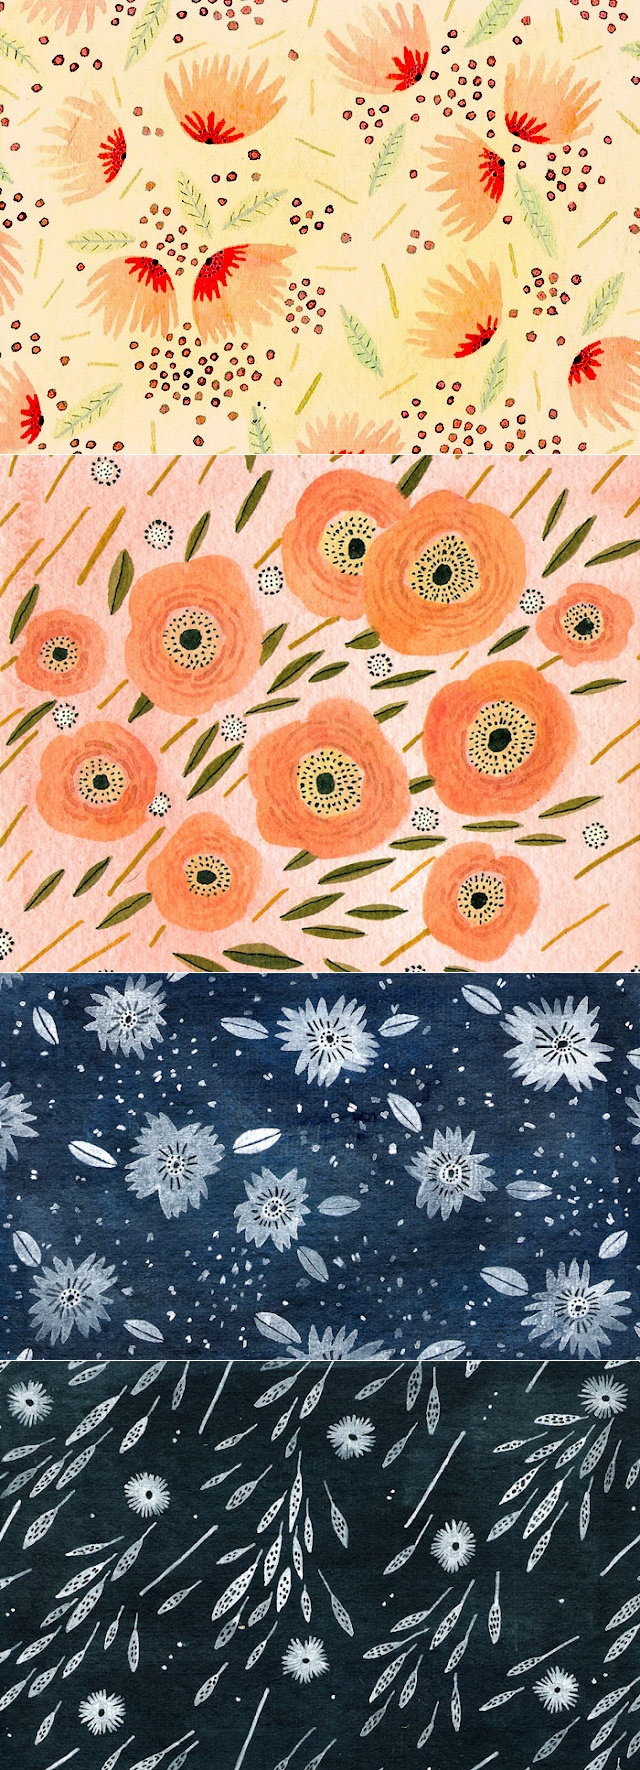 These gorgeous floral patterns by Becca Stadtlander made the blog rounds recently, and for good reason! (via nancy straughan http://nancystraughan.blogspot.com/2012/02/becca-stadt-lander.html)